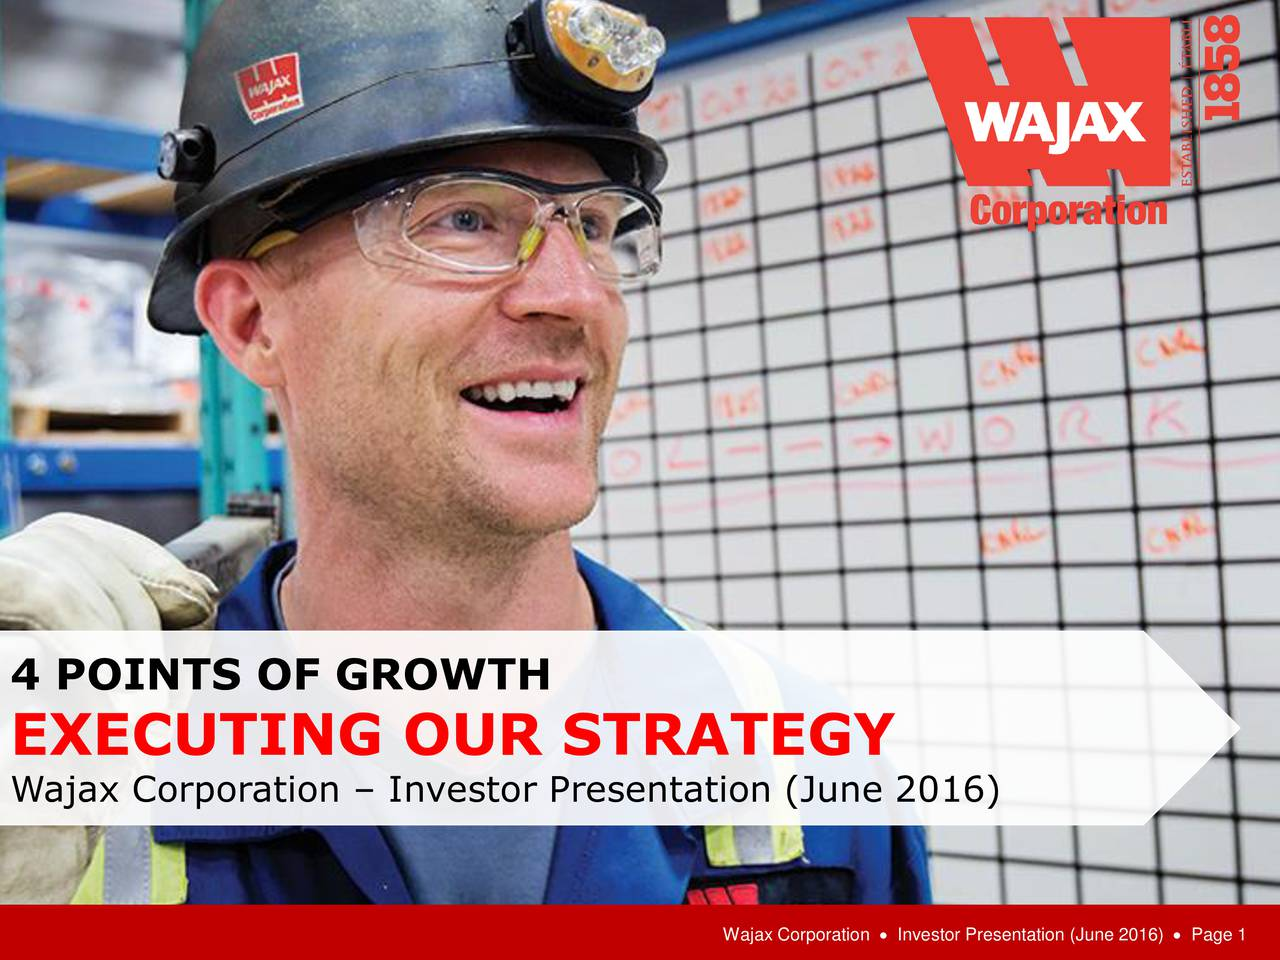 4 POINTS OF GROWTH EXECUTING OUR STRATEGY Wajax Corporation  Investor Presentation (June 2016) Wajax Corporation  Investor Presentation (June 2016)  Page 1